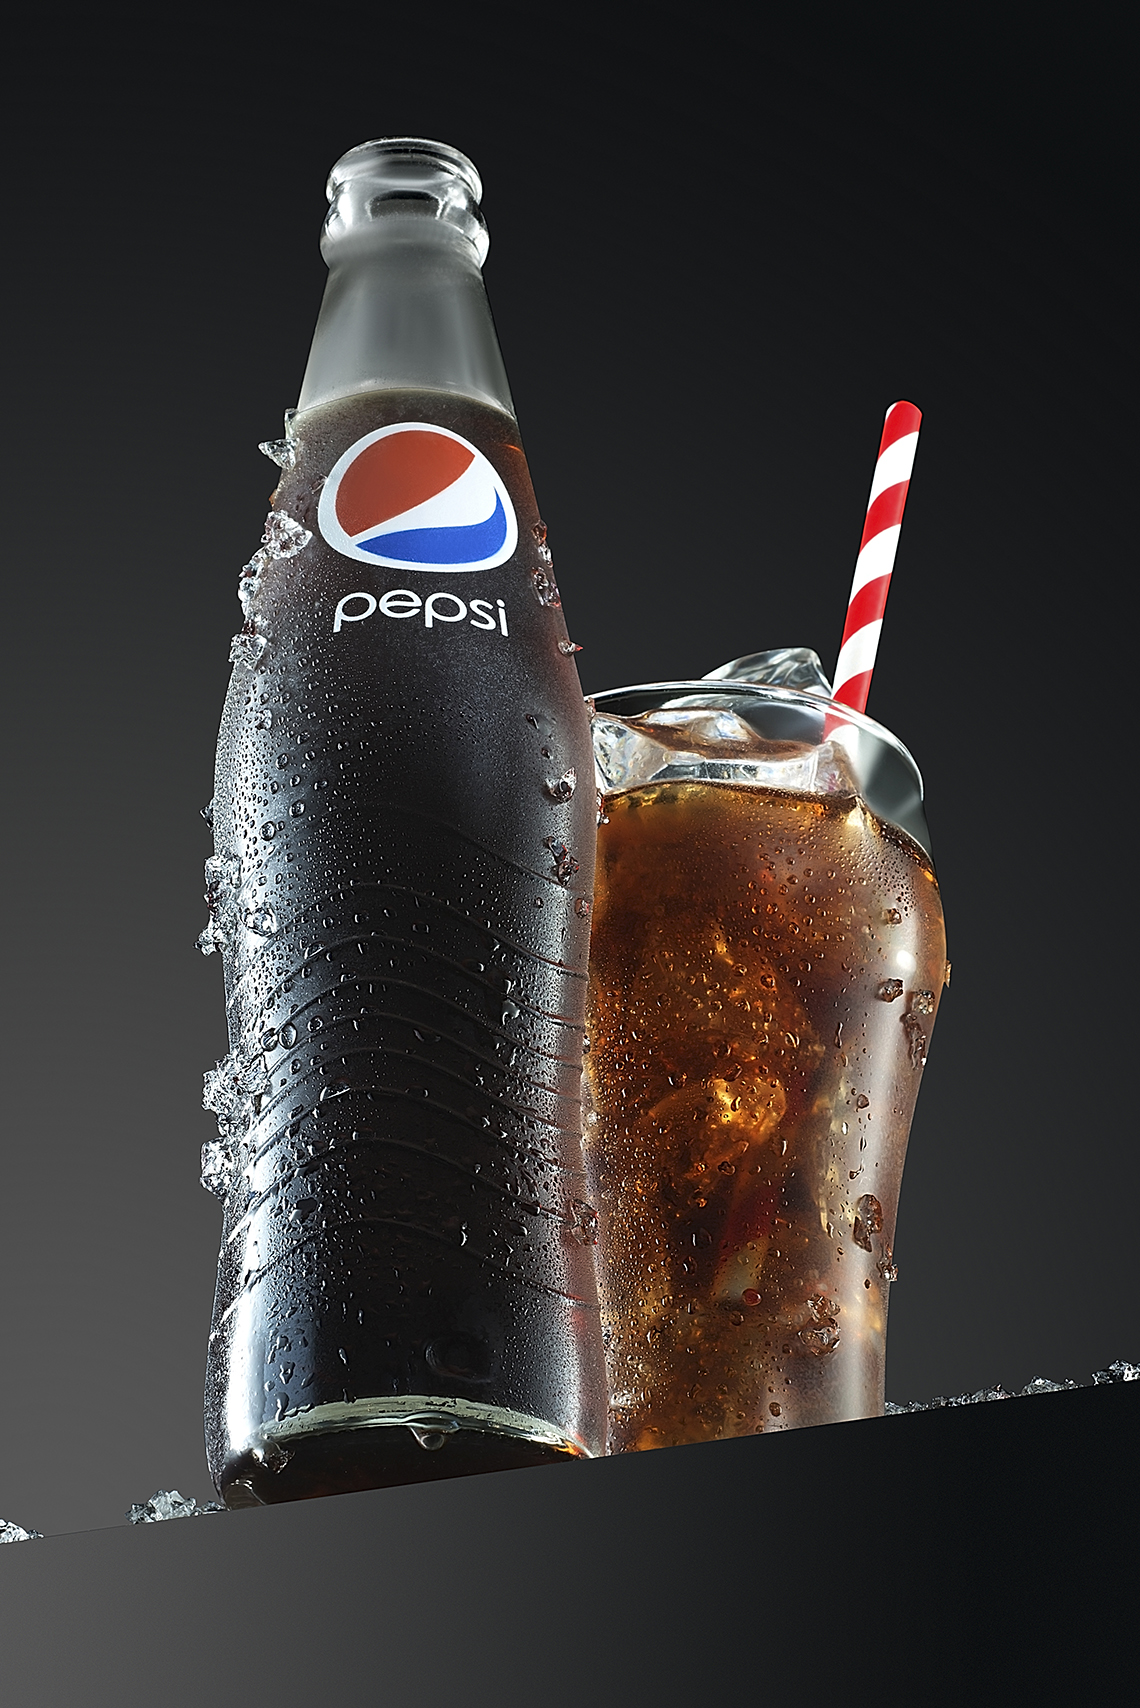 Pepsi-beverage-photography-still-life